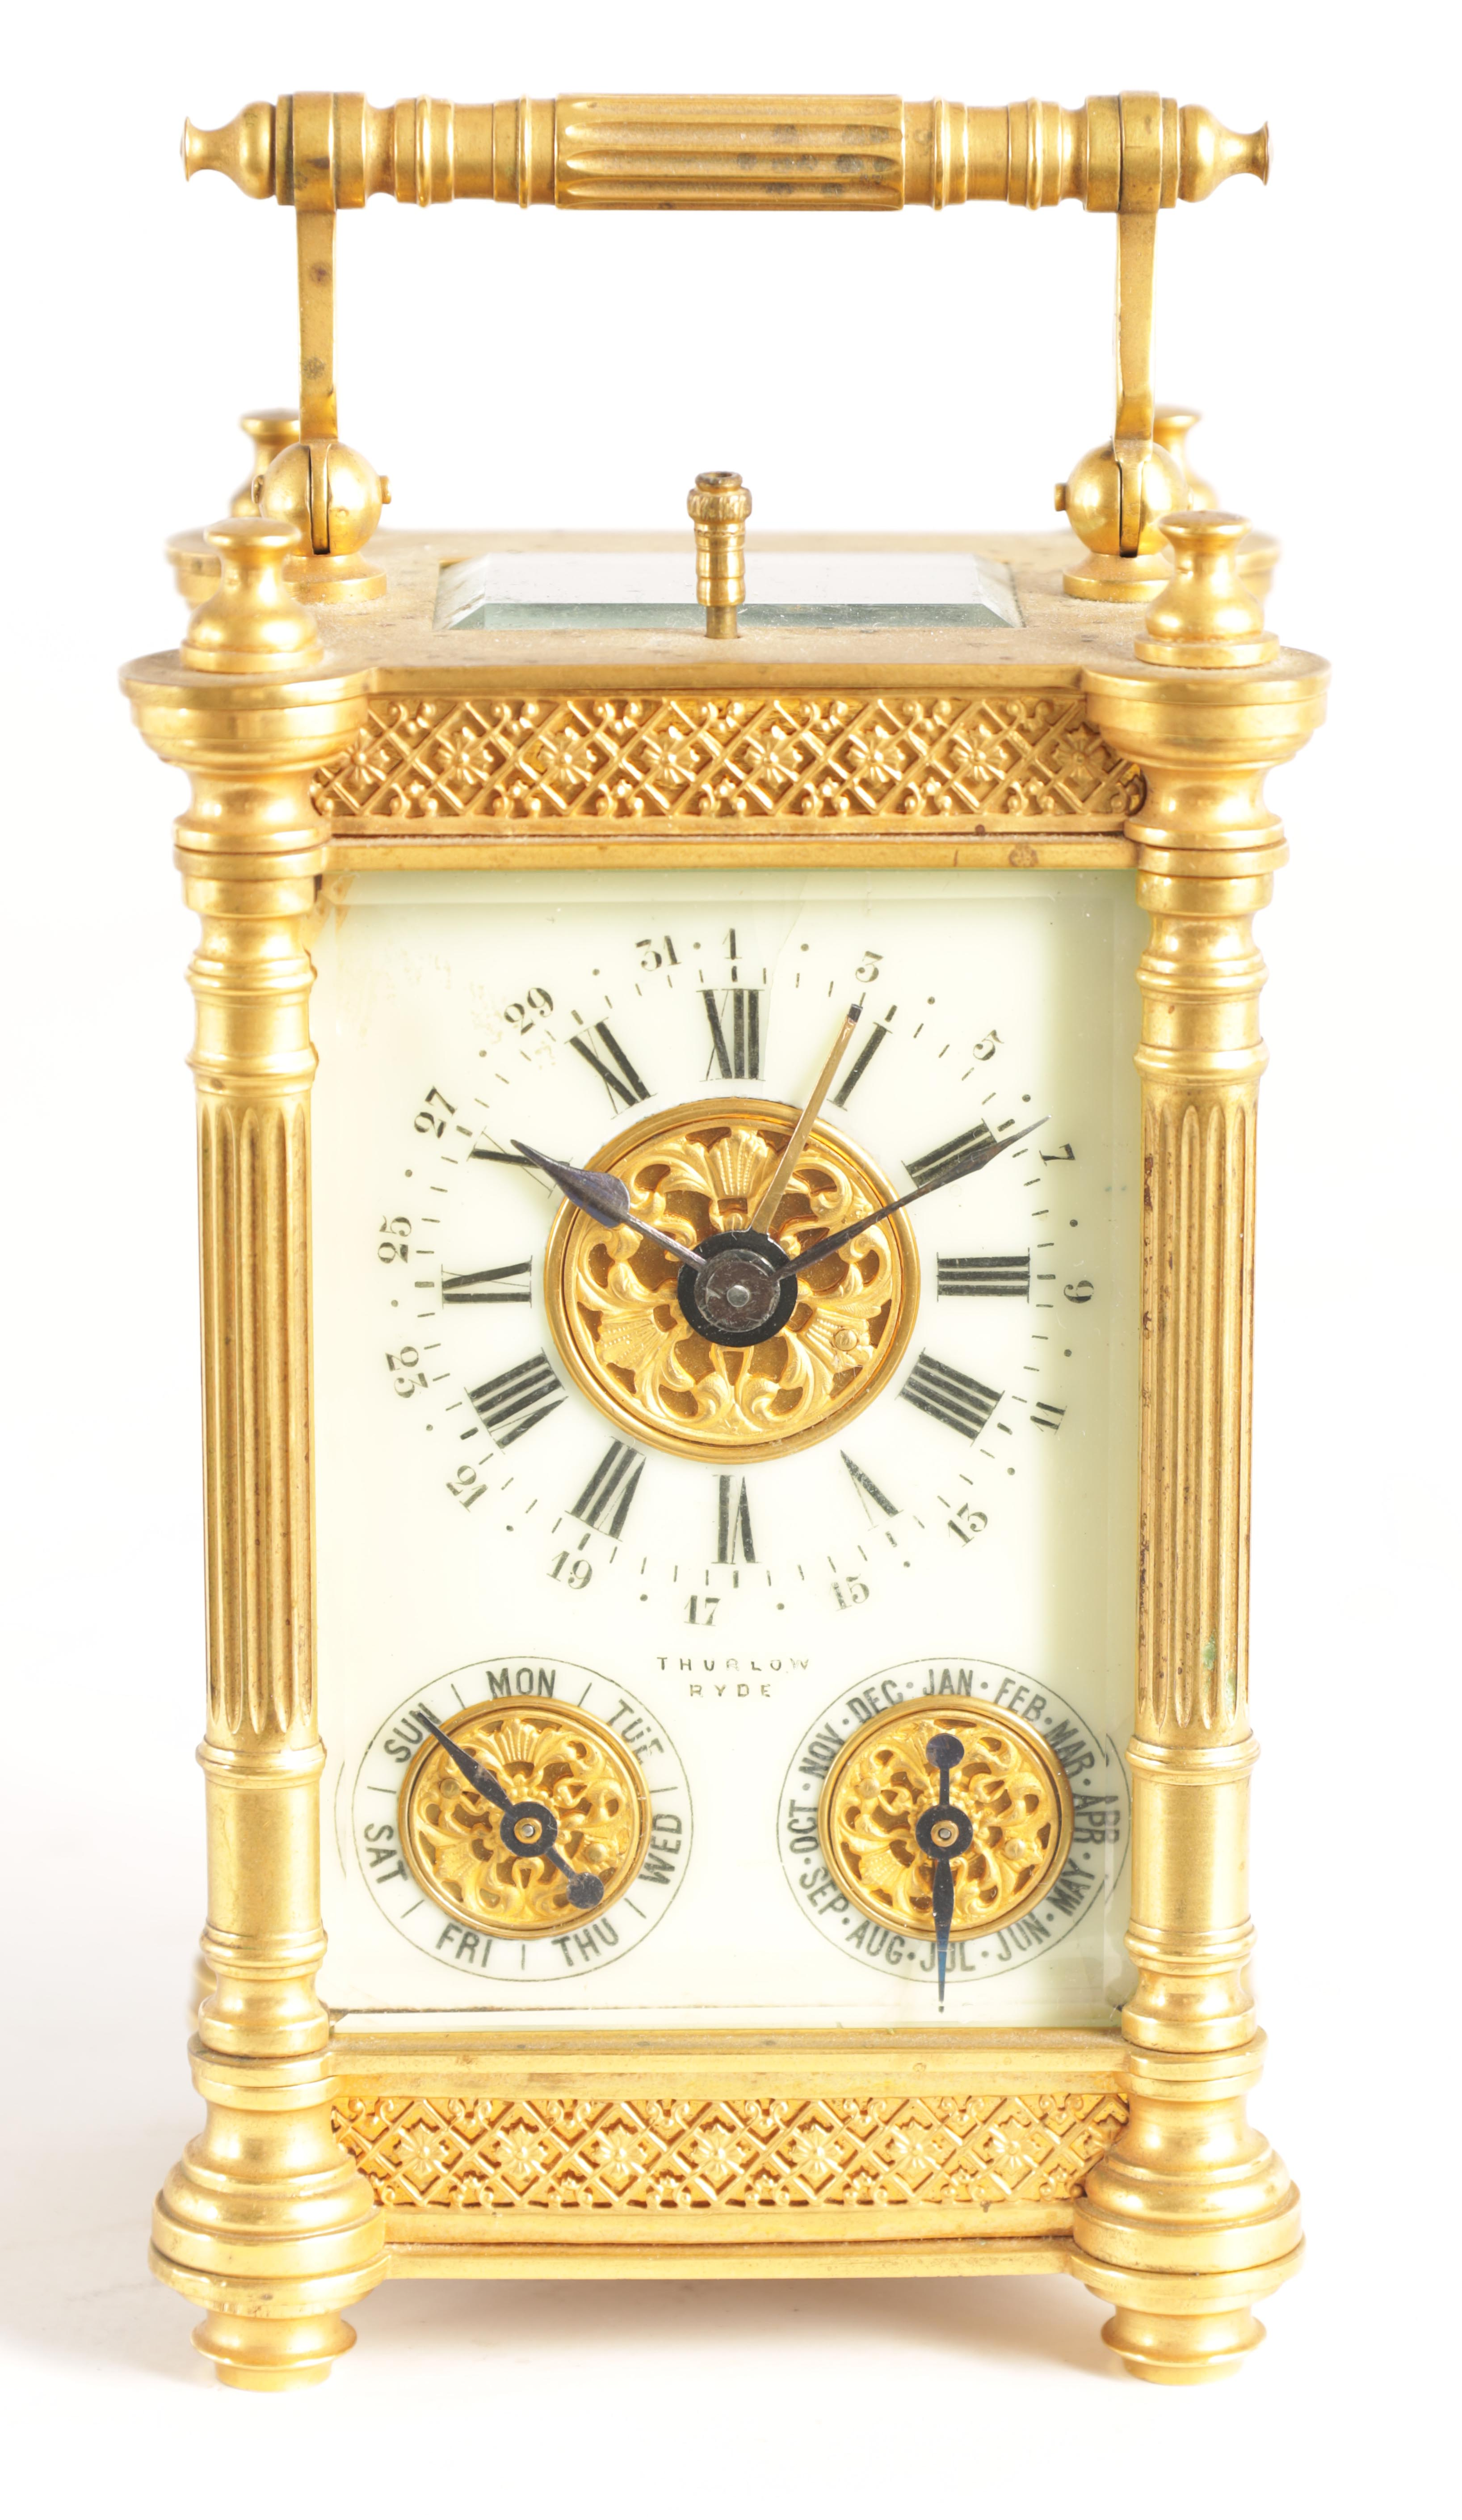 A LATE 19TH CENTURY FRENCH BRASS CARRIAGE CLOCK WITH CALENDAR the gilt case with pierced frieze - Image 2 of 6